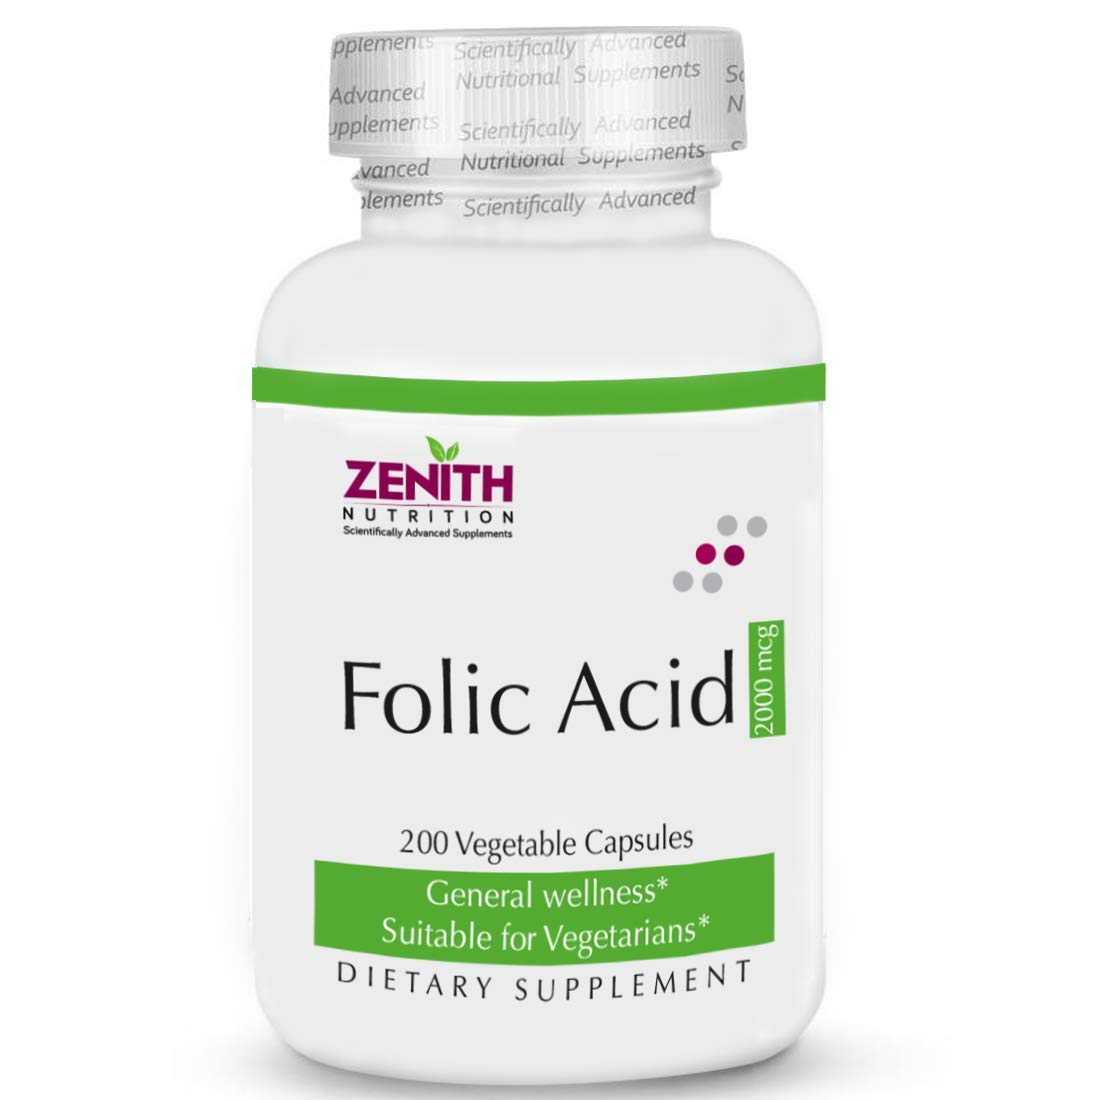 Zenith Nutrition Folic Acid 2 Mg - 200 Capsules